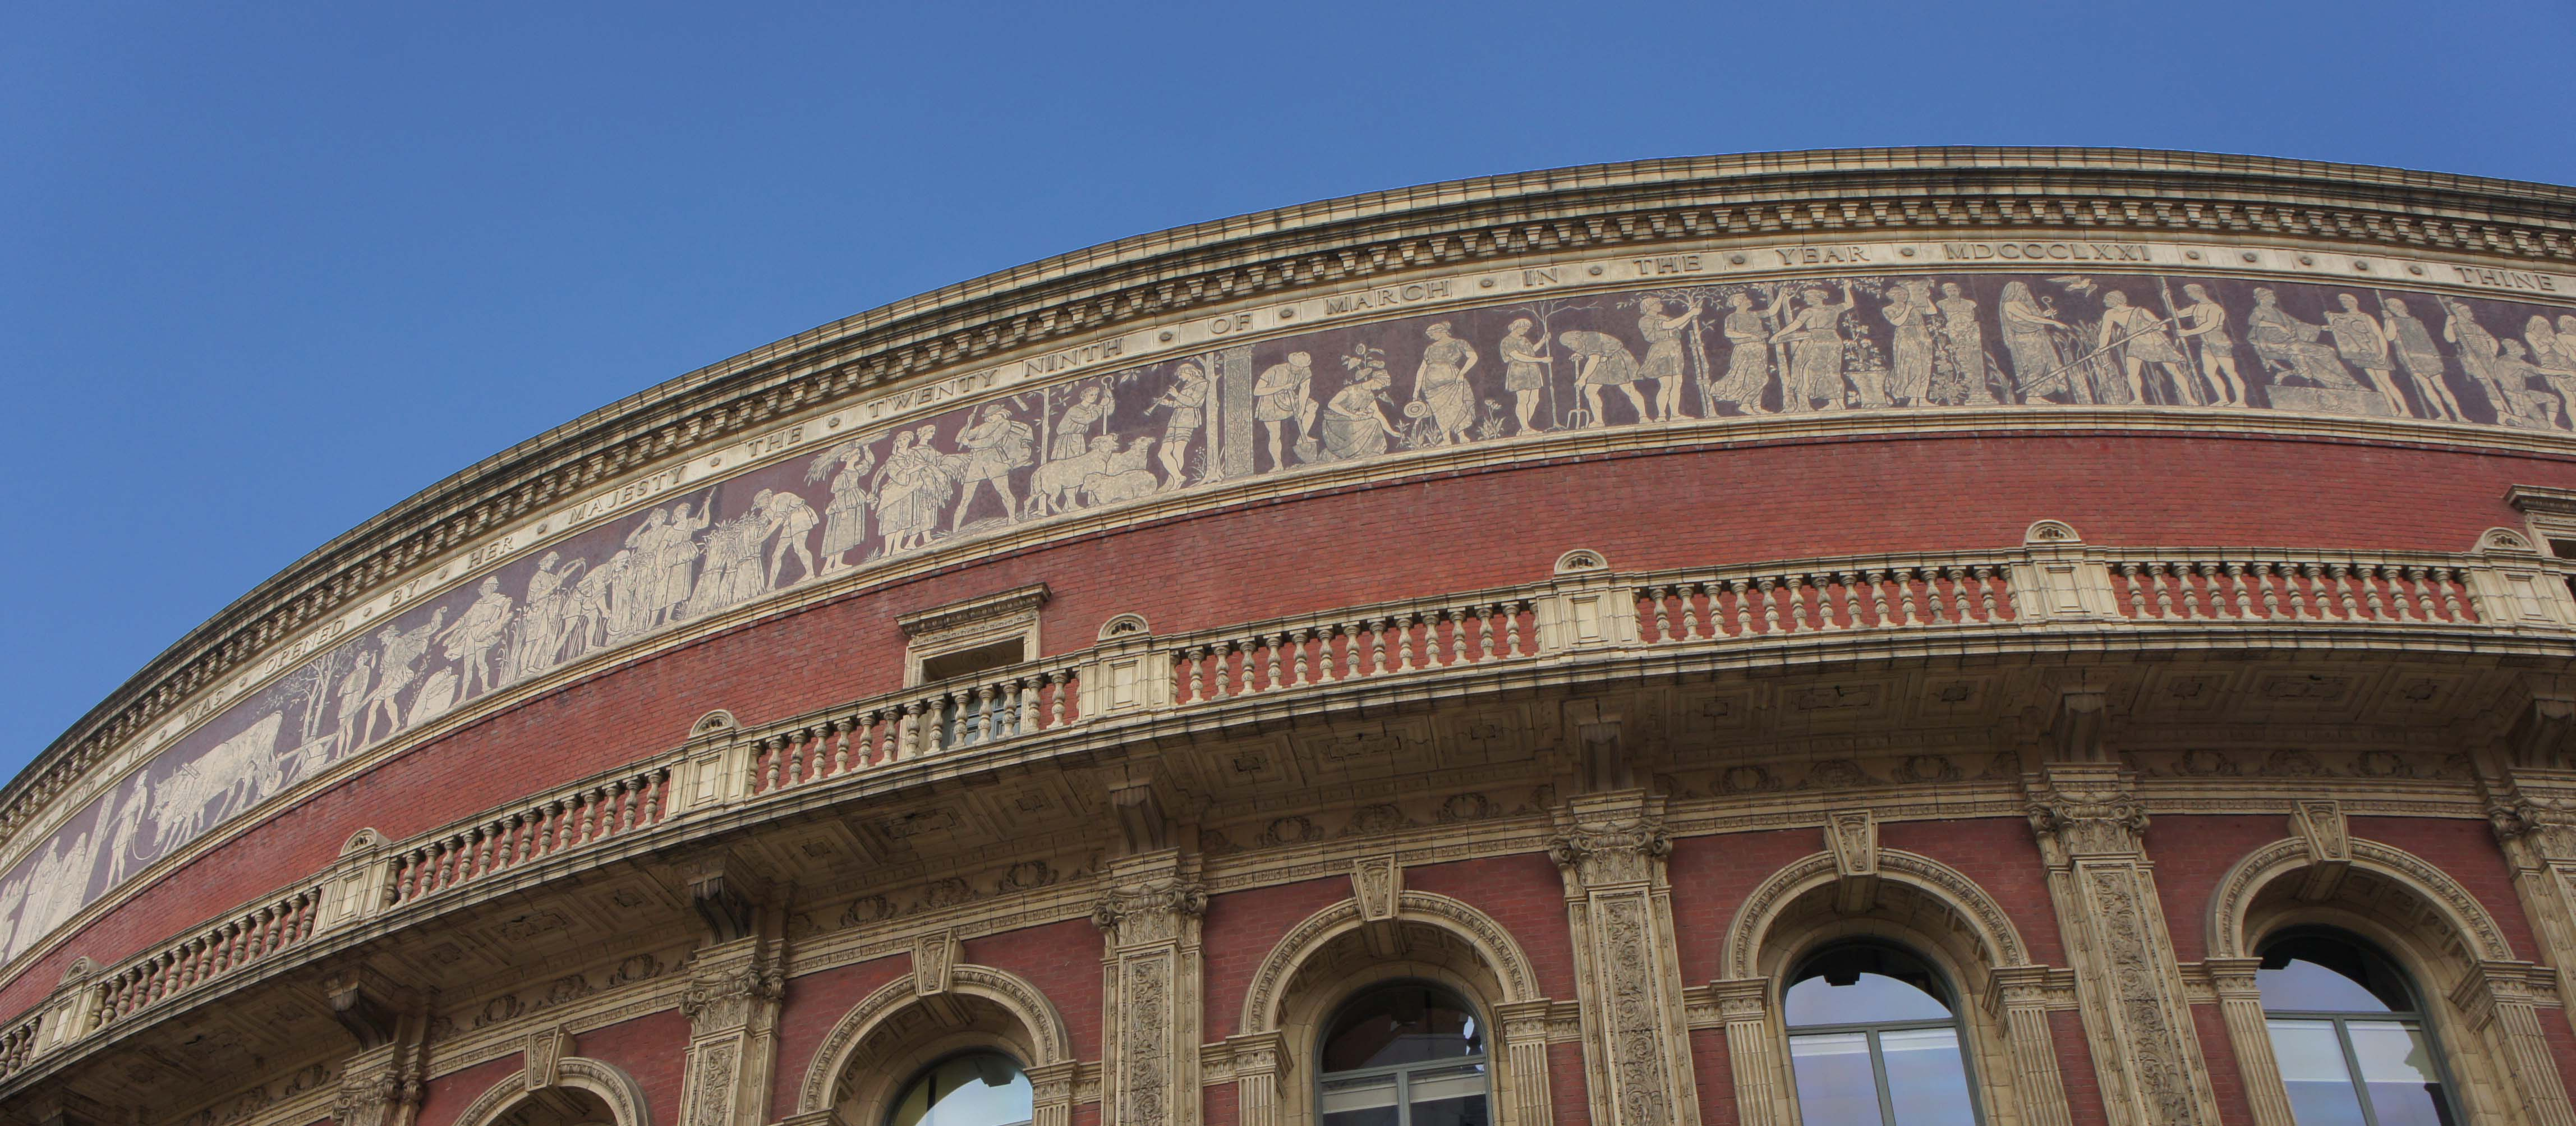 Detail of the Royal Albert Hall's mosaic frieze, showing the section Agriculture by H. Stacy Marks. Photography by S. M. Harris